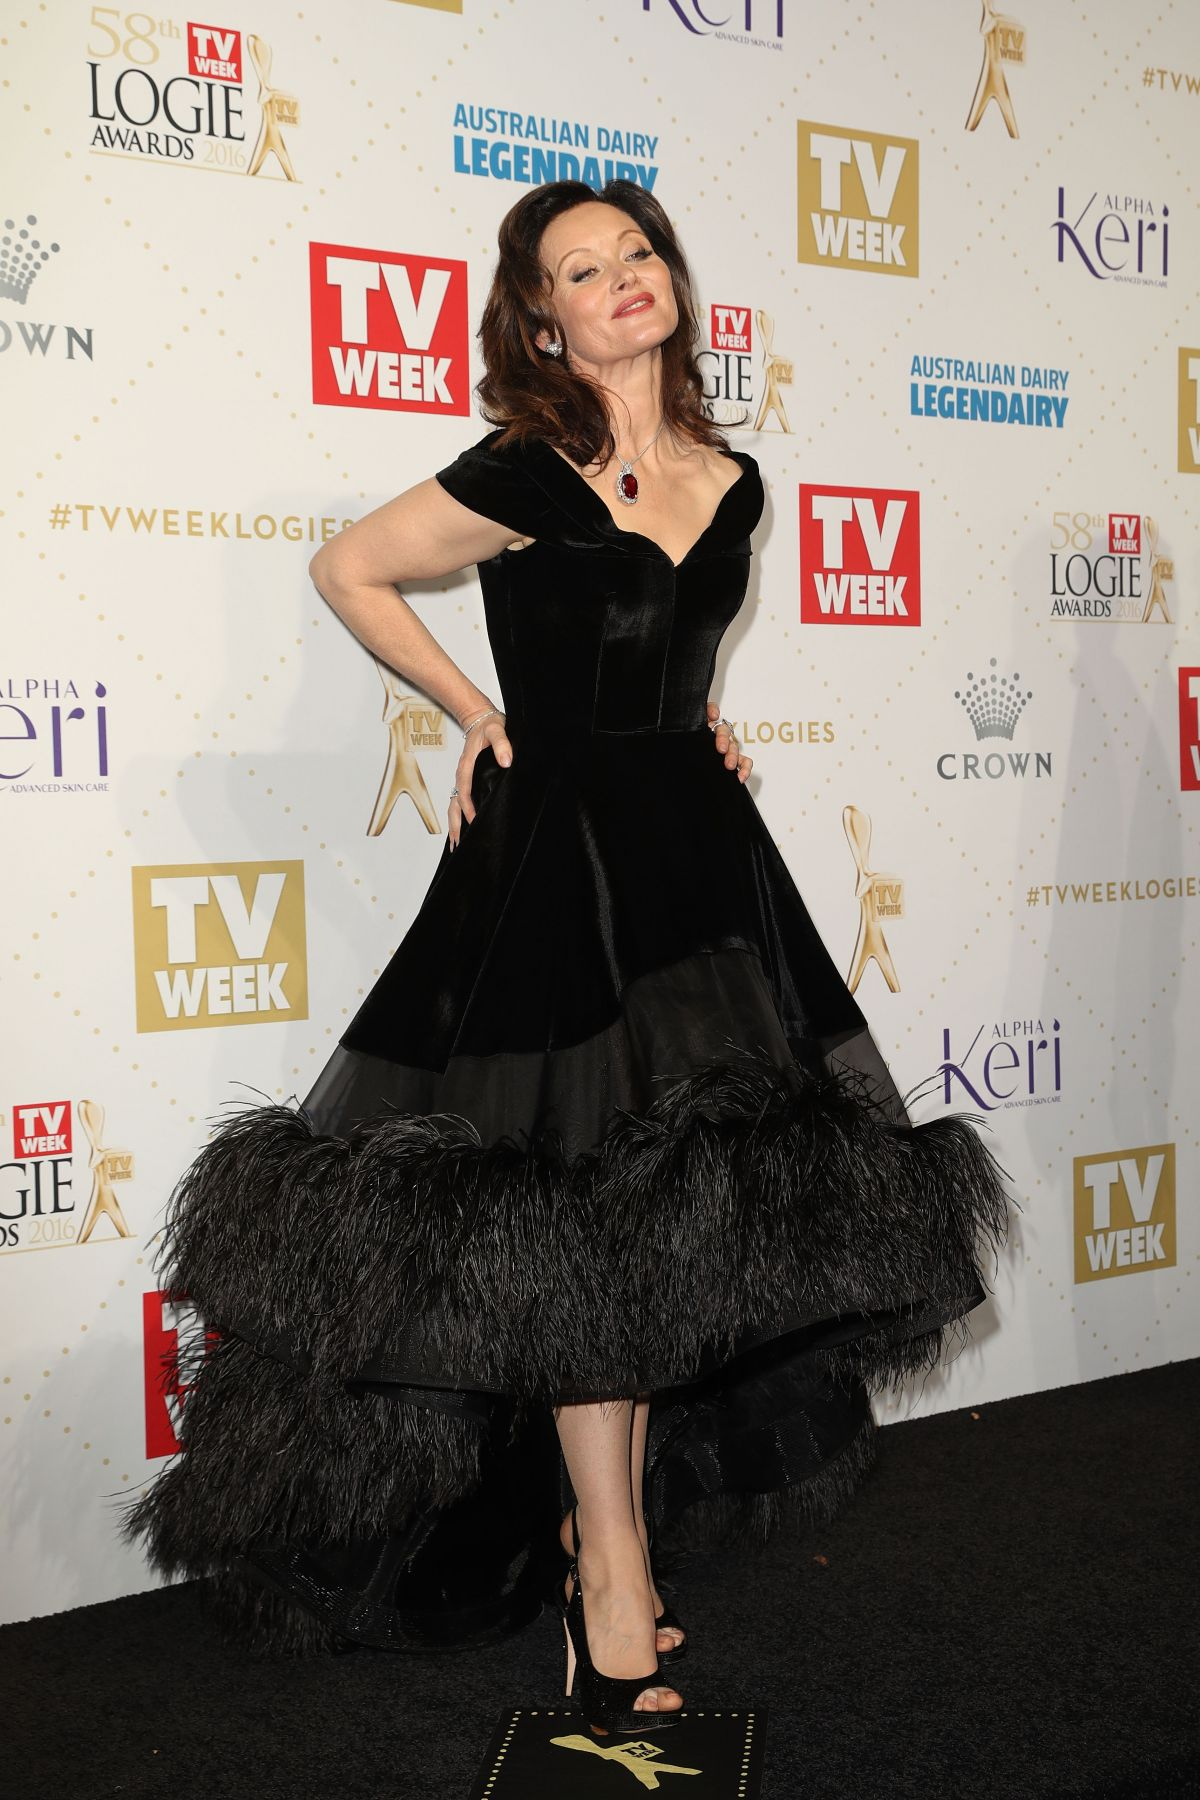 ESSIE DAVIS at 58th Annual Logie Awards in Melbourne 05/08/2016